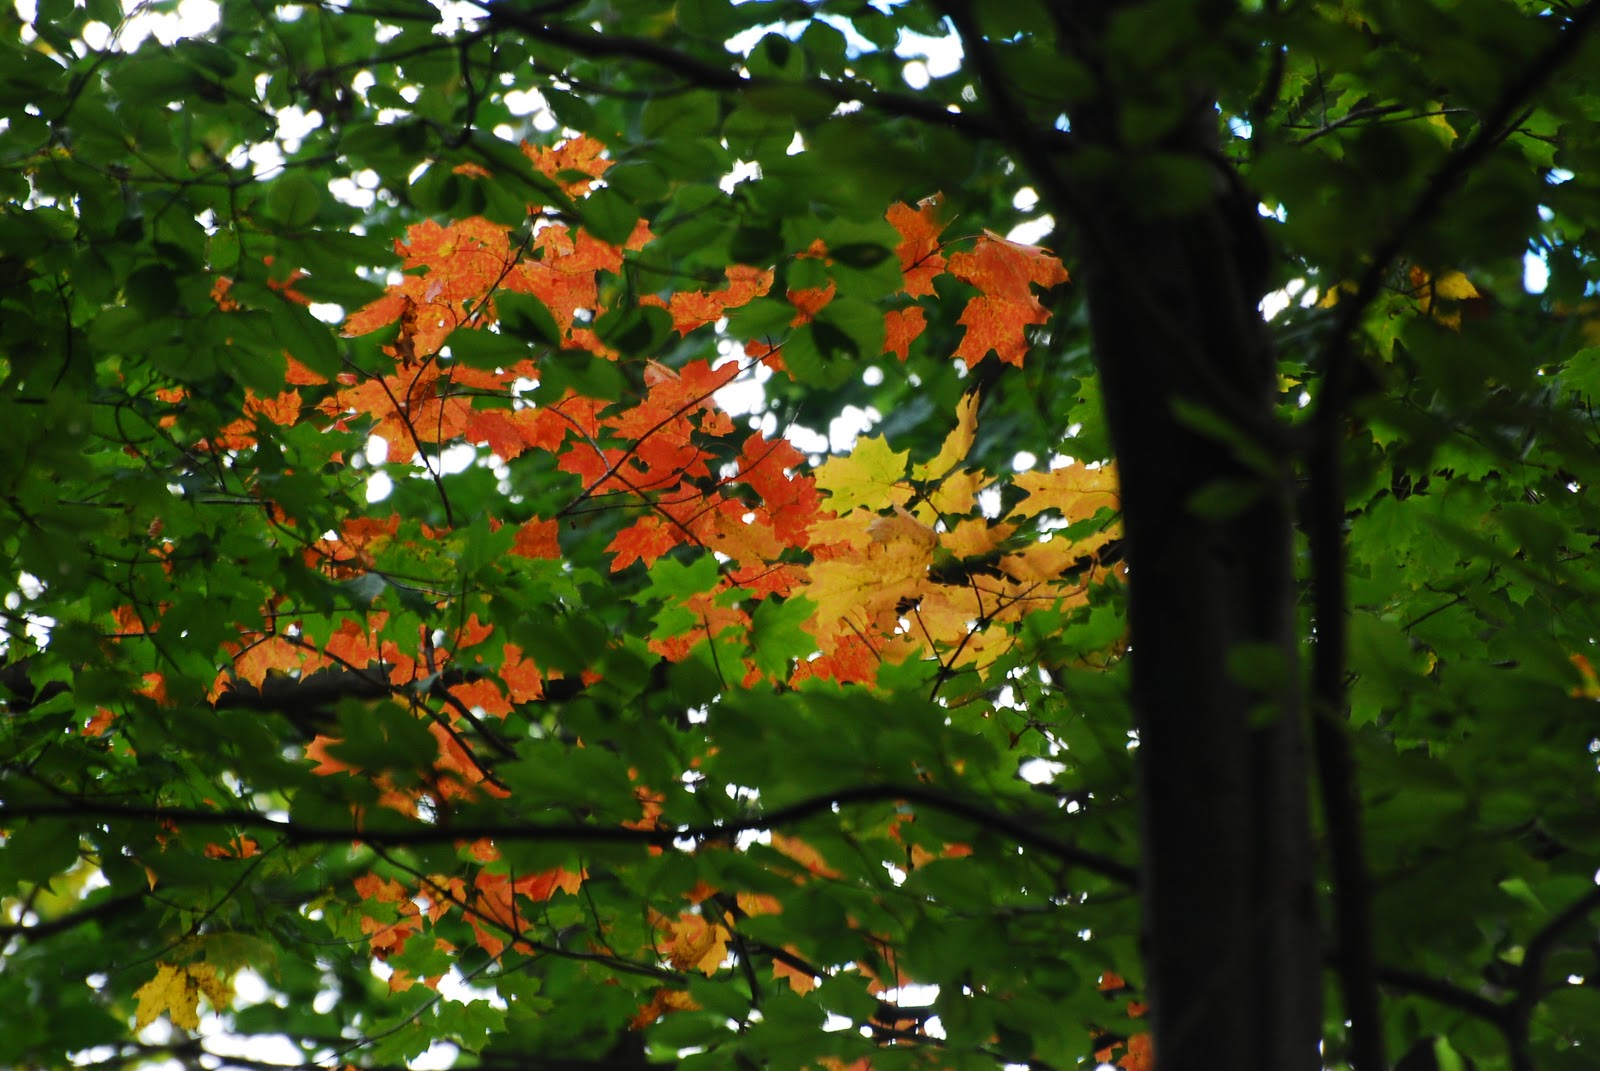 Mission Musings: FOUR SEASONS IN THE SACRED GROVE: Fall